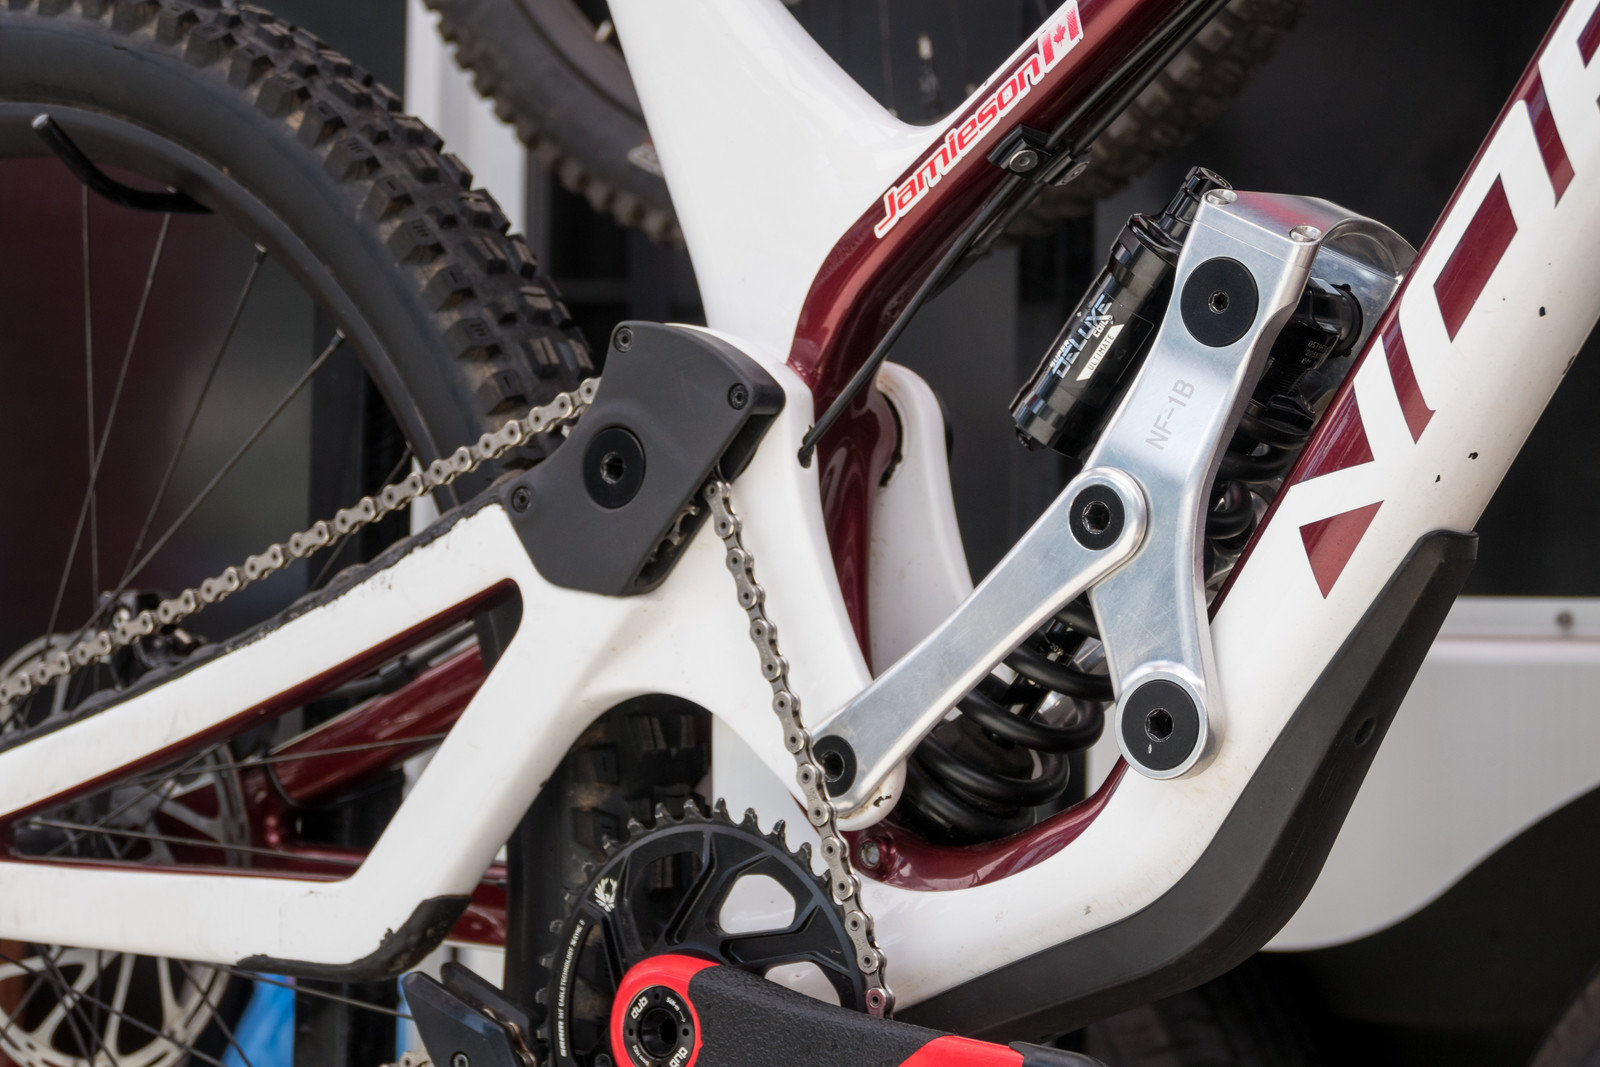 Prototype Norco Aurum Suspension Linkage - PIT BITS - 2019 Crankworx Whistler Bikes and Tech - Mountain Biking Pictures - Vital MTB